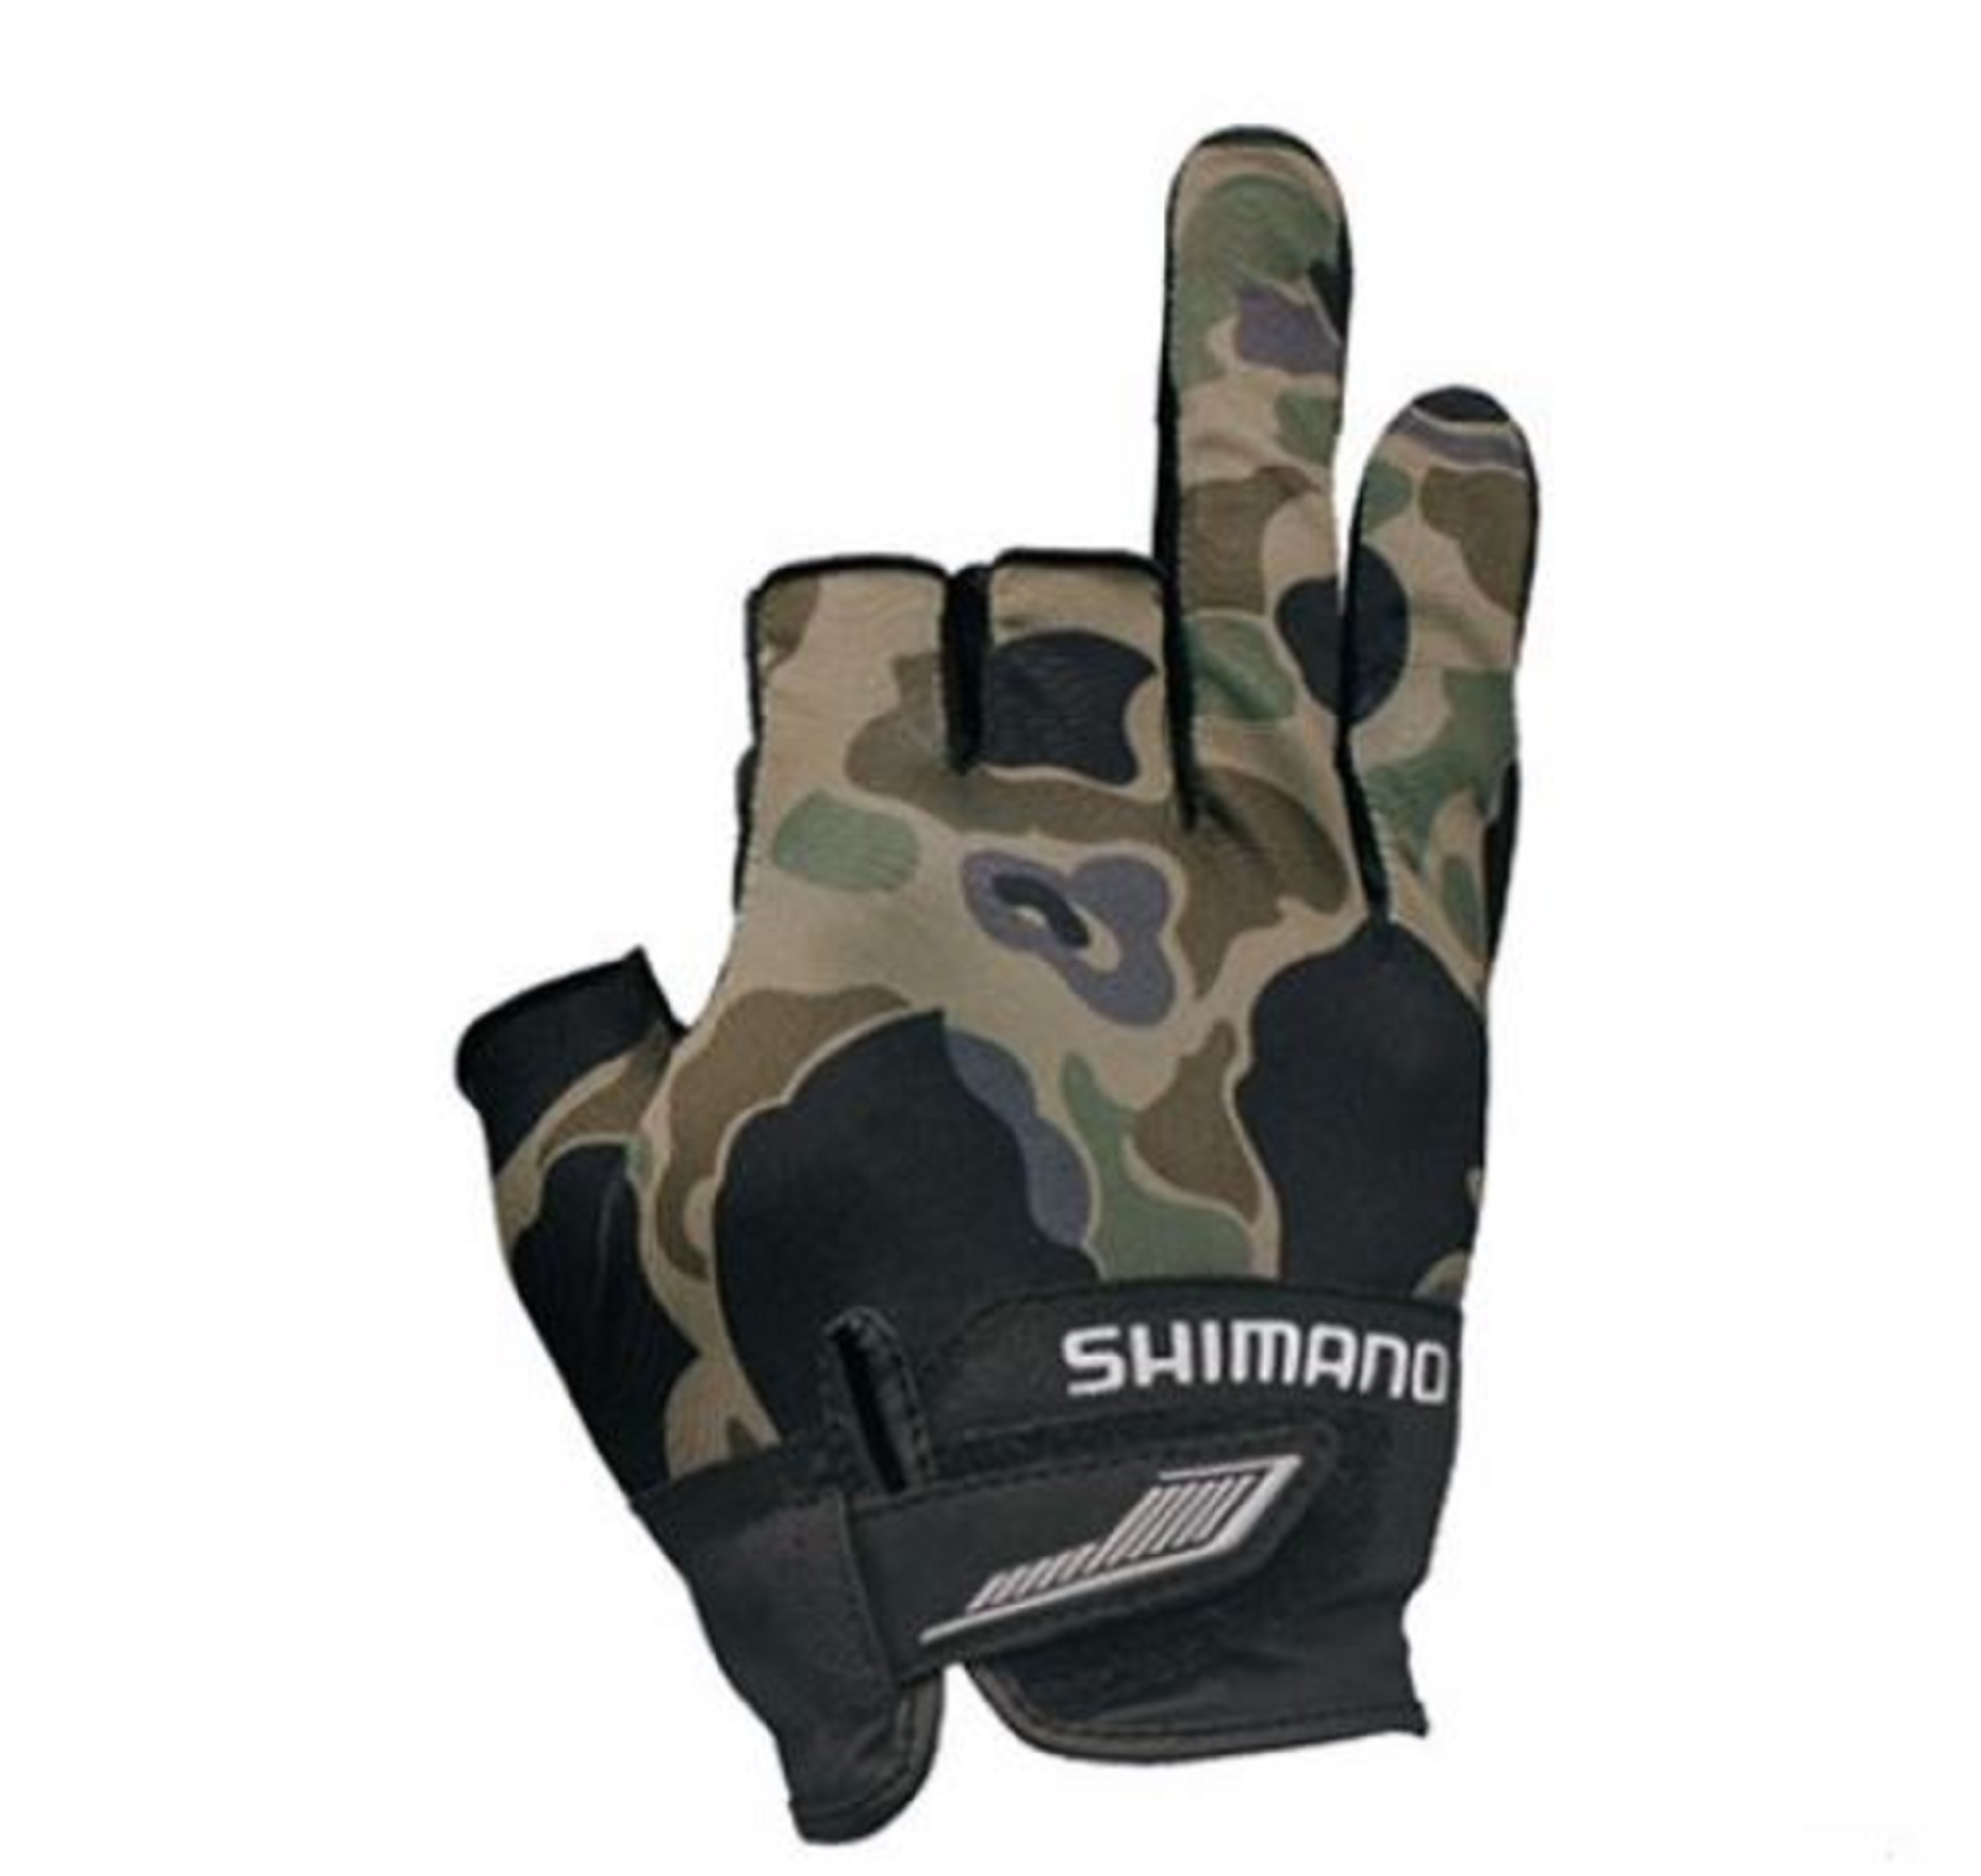 Shimano GL-021S Gloves 3D Casting 3 Fingerless Camou Size L 669421